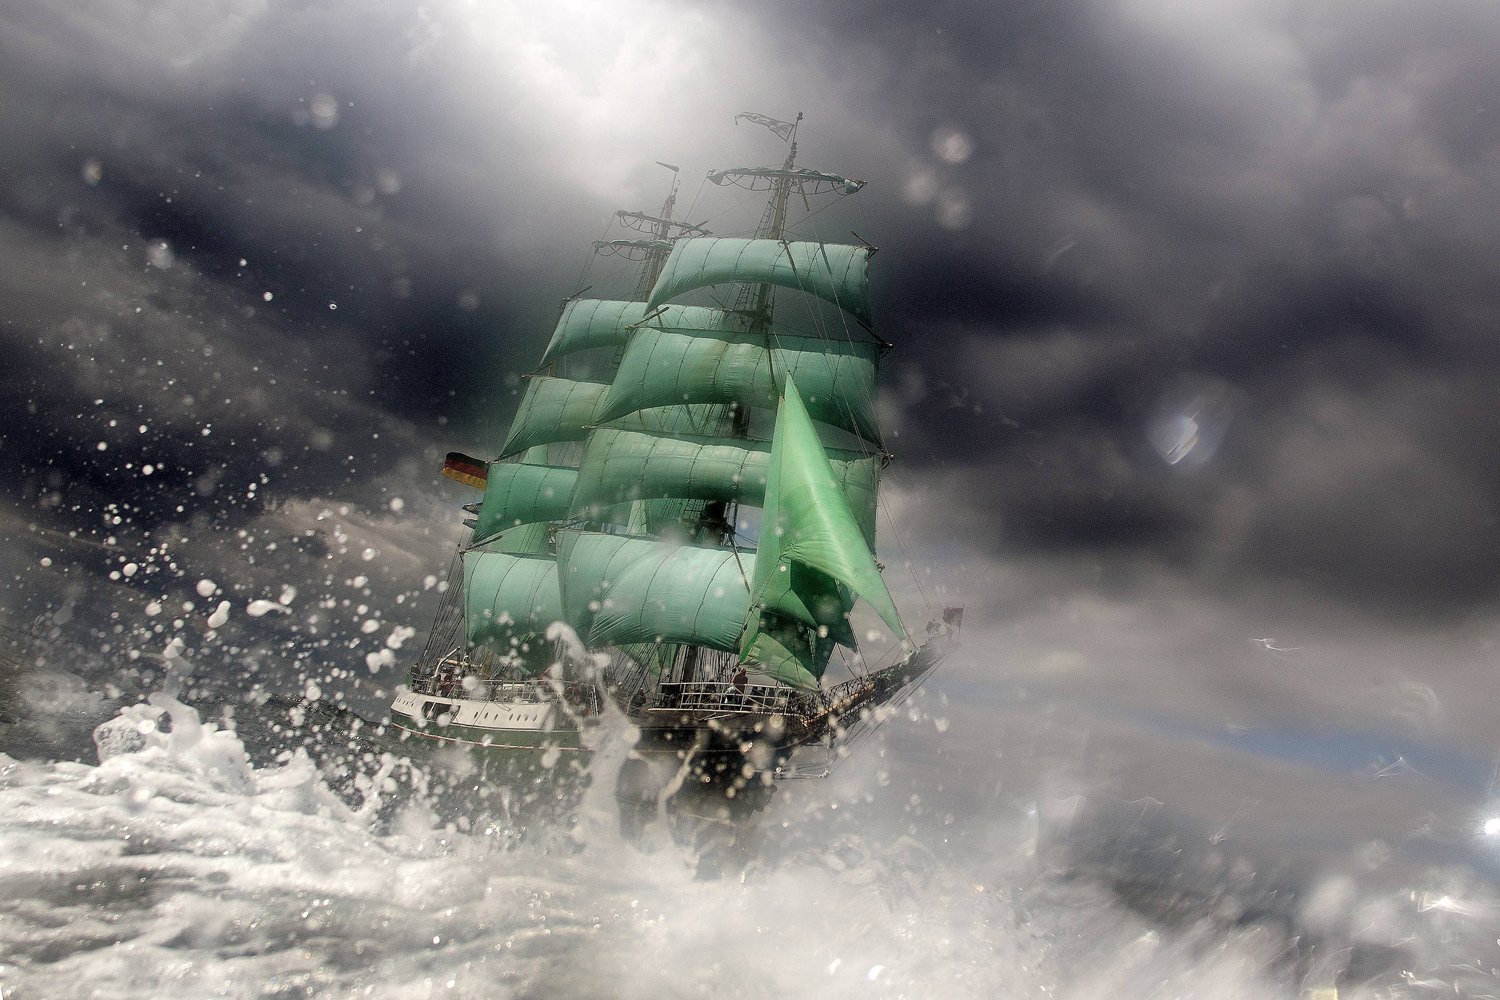 June 24, 2011. The tall ship Alexander von Humbolt cuts through waves and weather during Kieler Woche, the world's largest sailing event in the world in Kiel, Germany.